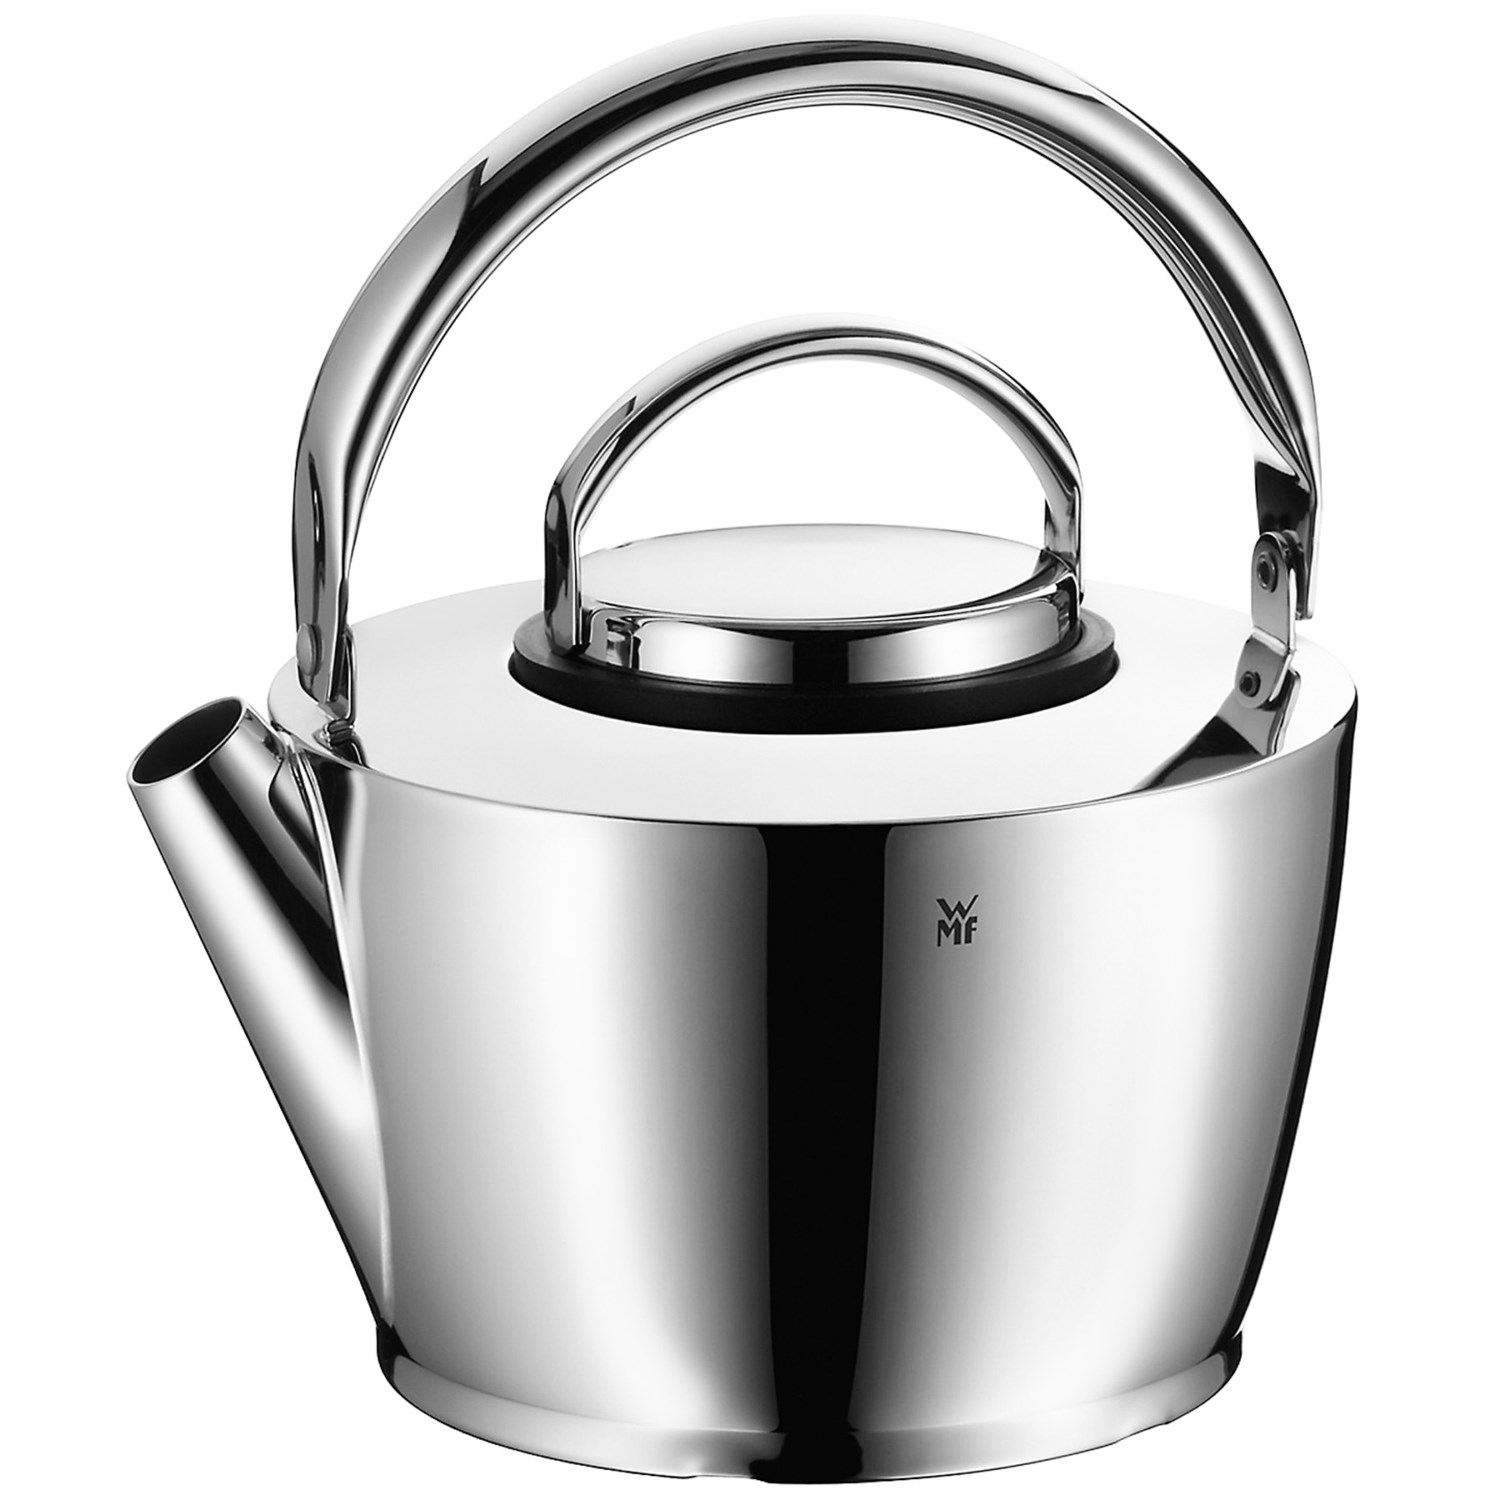 Tea Kettle With Strainer Wmf Cromargan 18 10 Stainless Steel Tea Kettle With